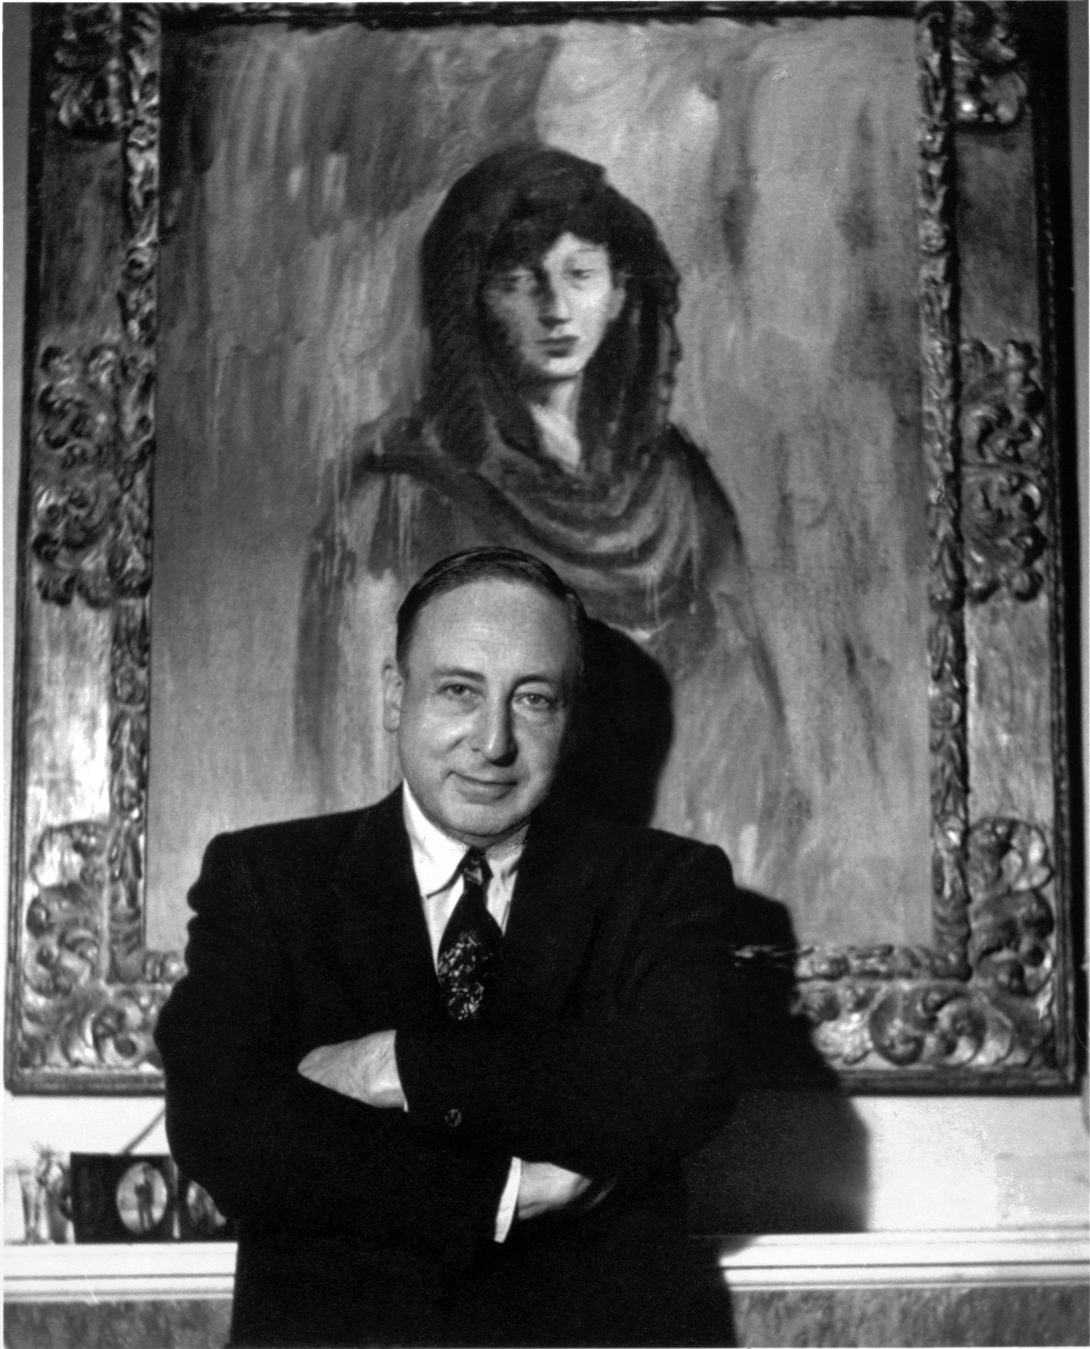 Justin K. Thannhauser in his private residence, New York, November 1957, with Pablo Picasso's Fernande With a Black Mantilla (1905–06), Solomon R. Guggenheim Museum). Courtesy ZADIK.